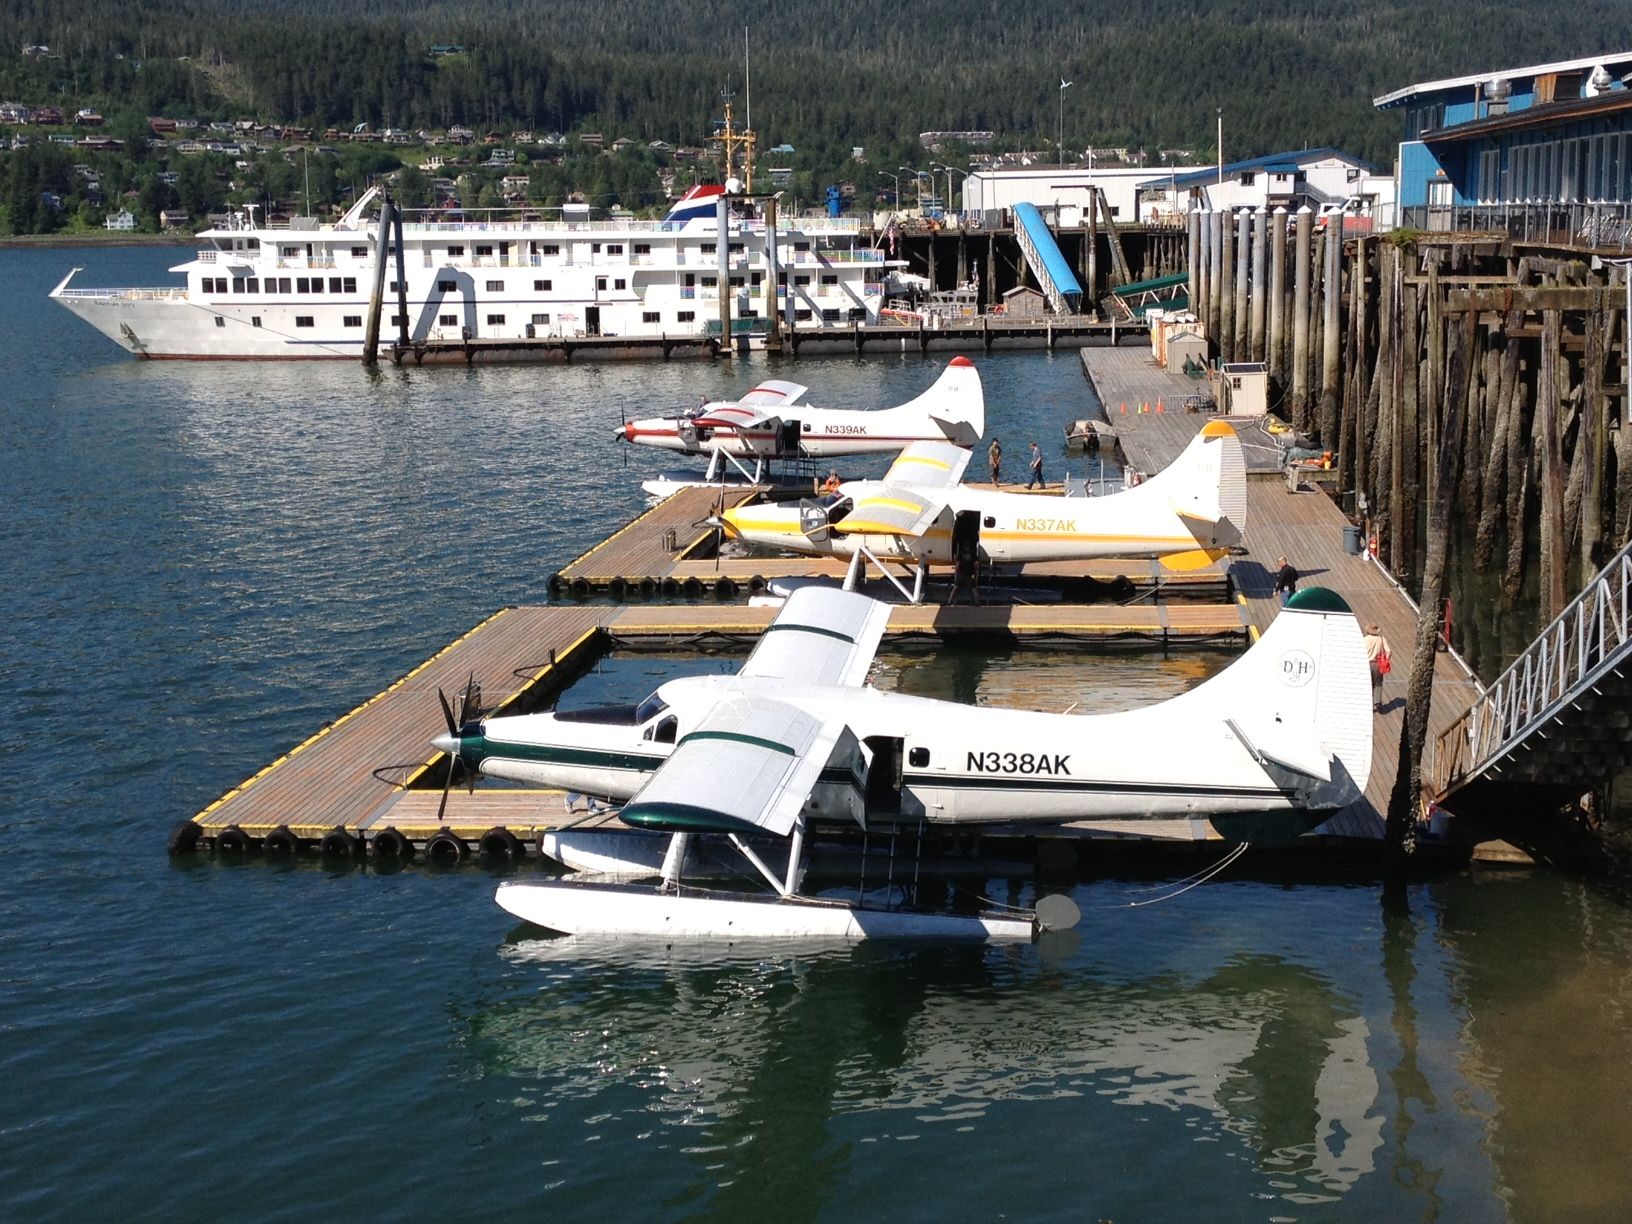 Float planes are often a source of loud noise downtown near Marine Park. (Photo by Lisa Phu/KTOO)